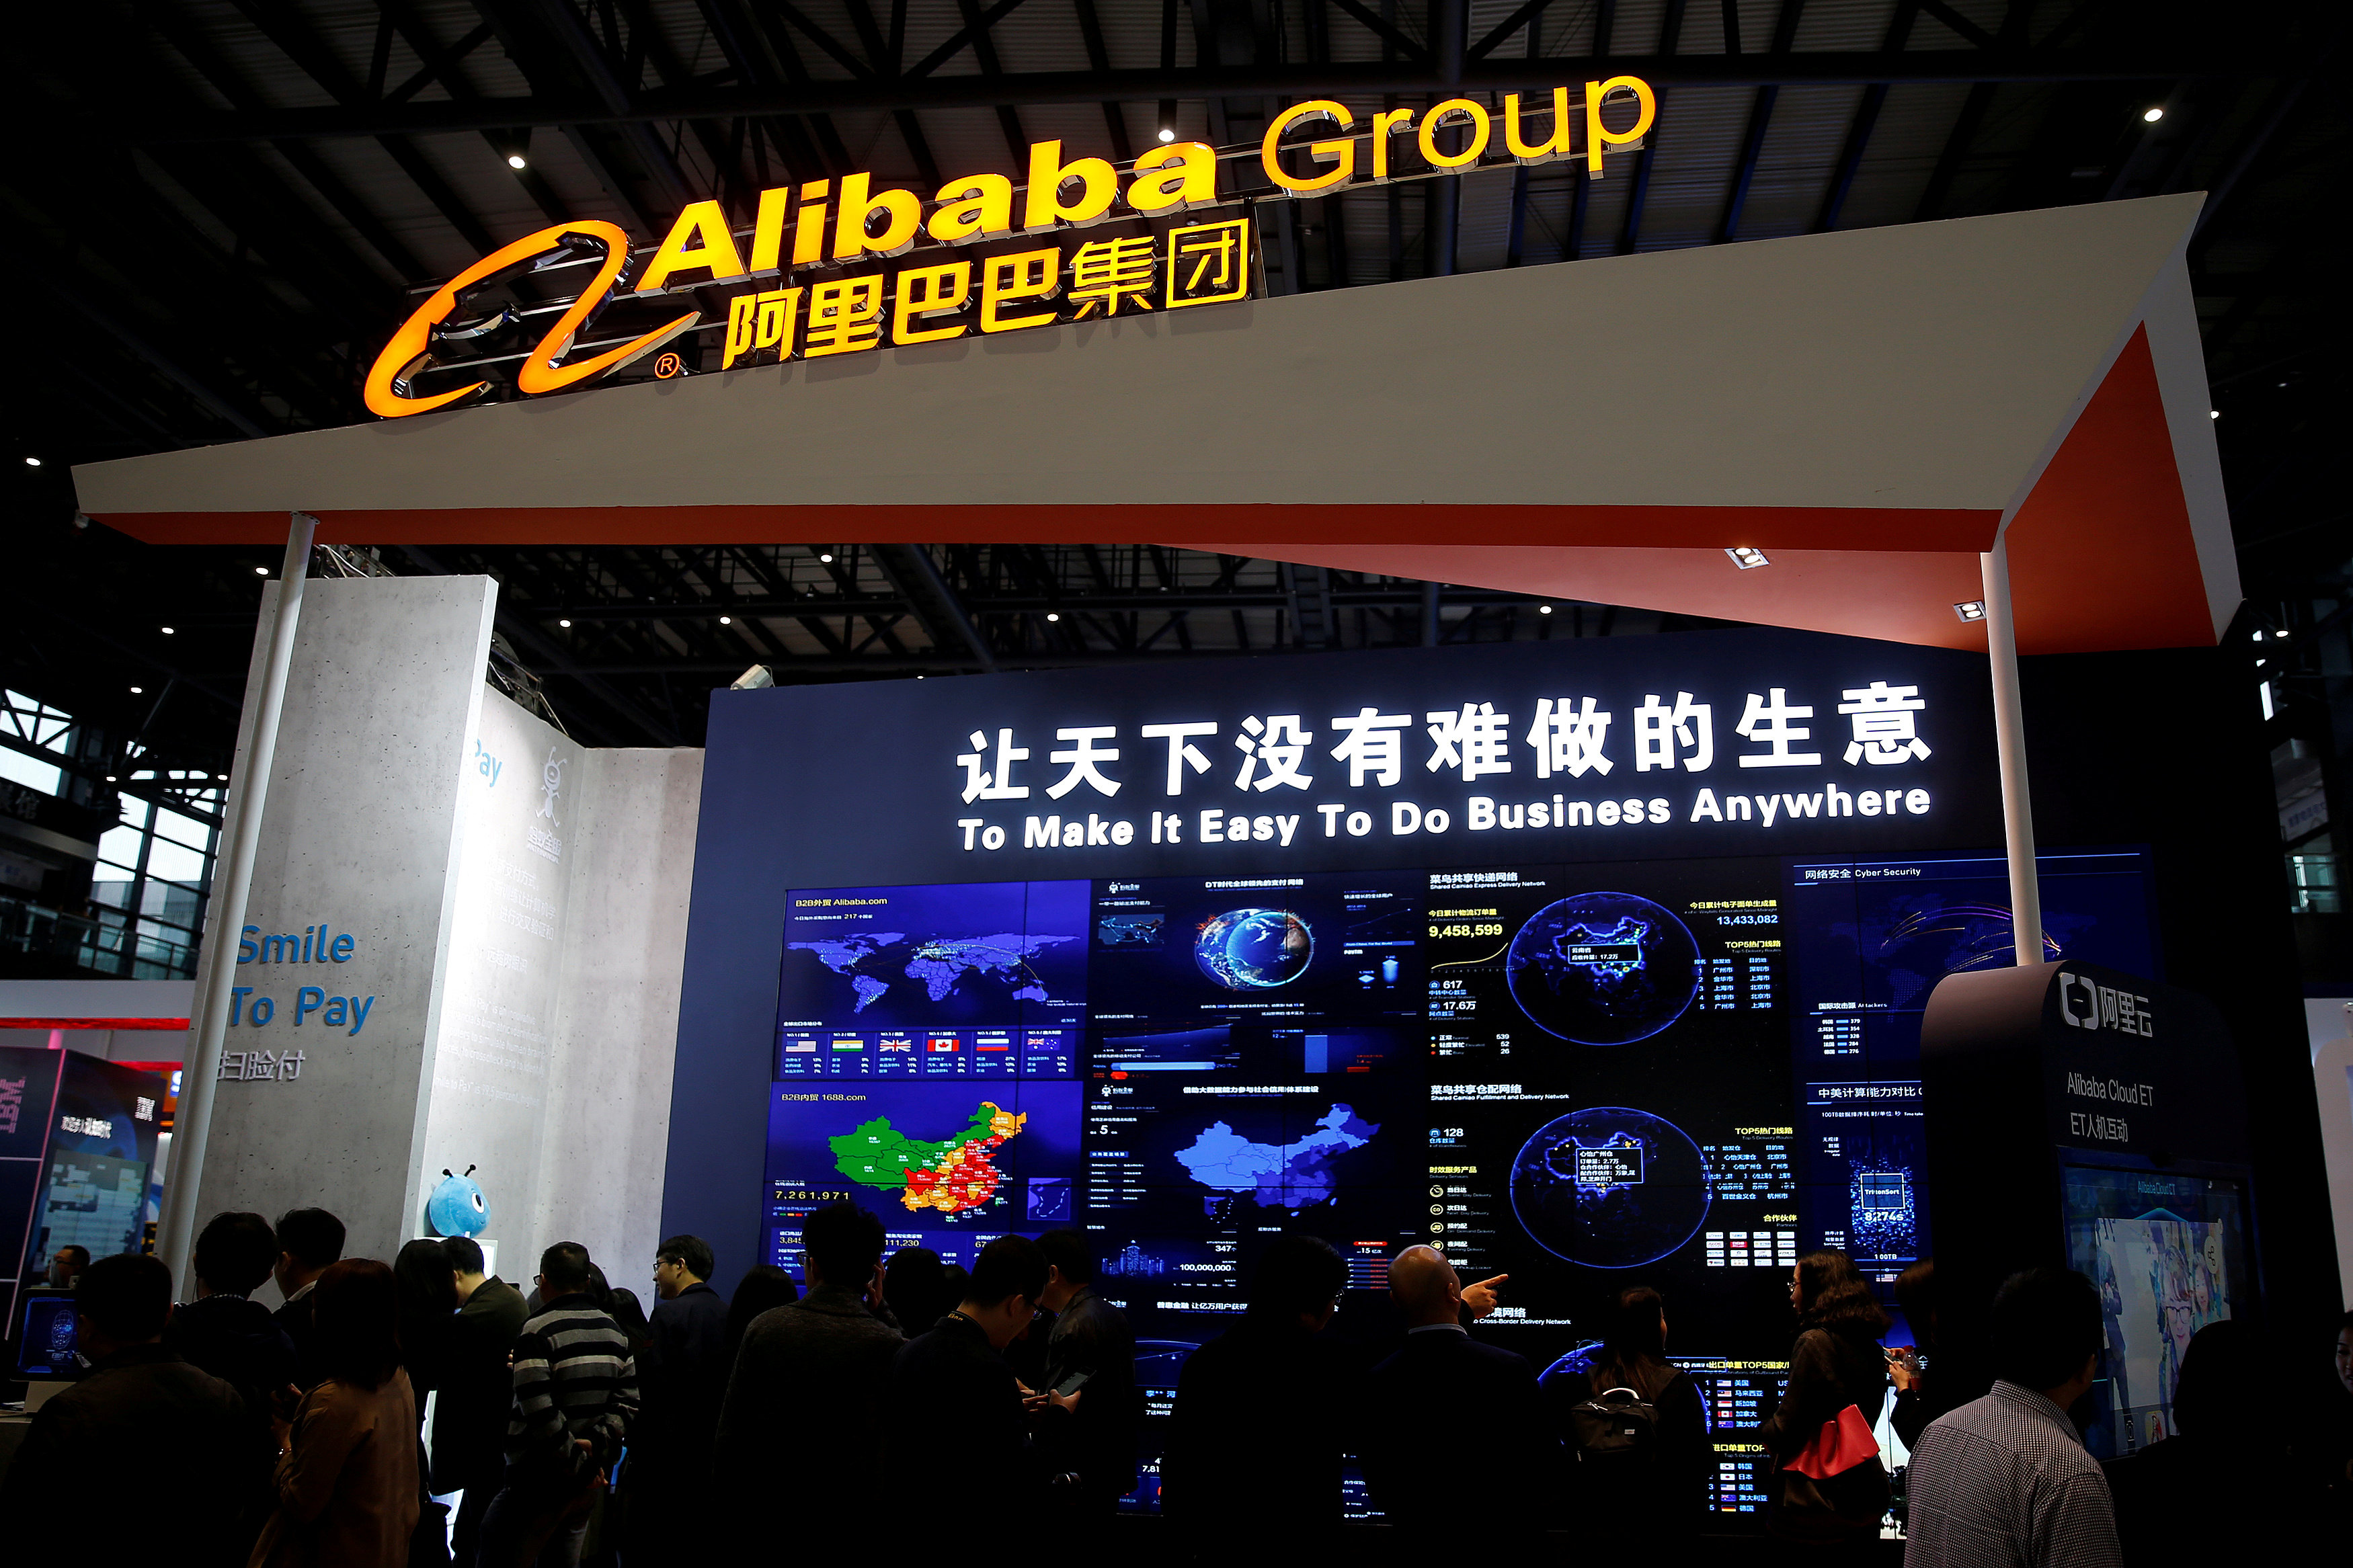 FILE PHOTO: A sign of Alibaba Group is seen during the third annual World Internet Conference in Wuzhen town of Jiaxing